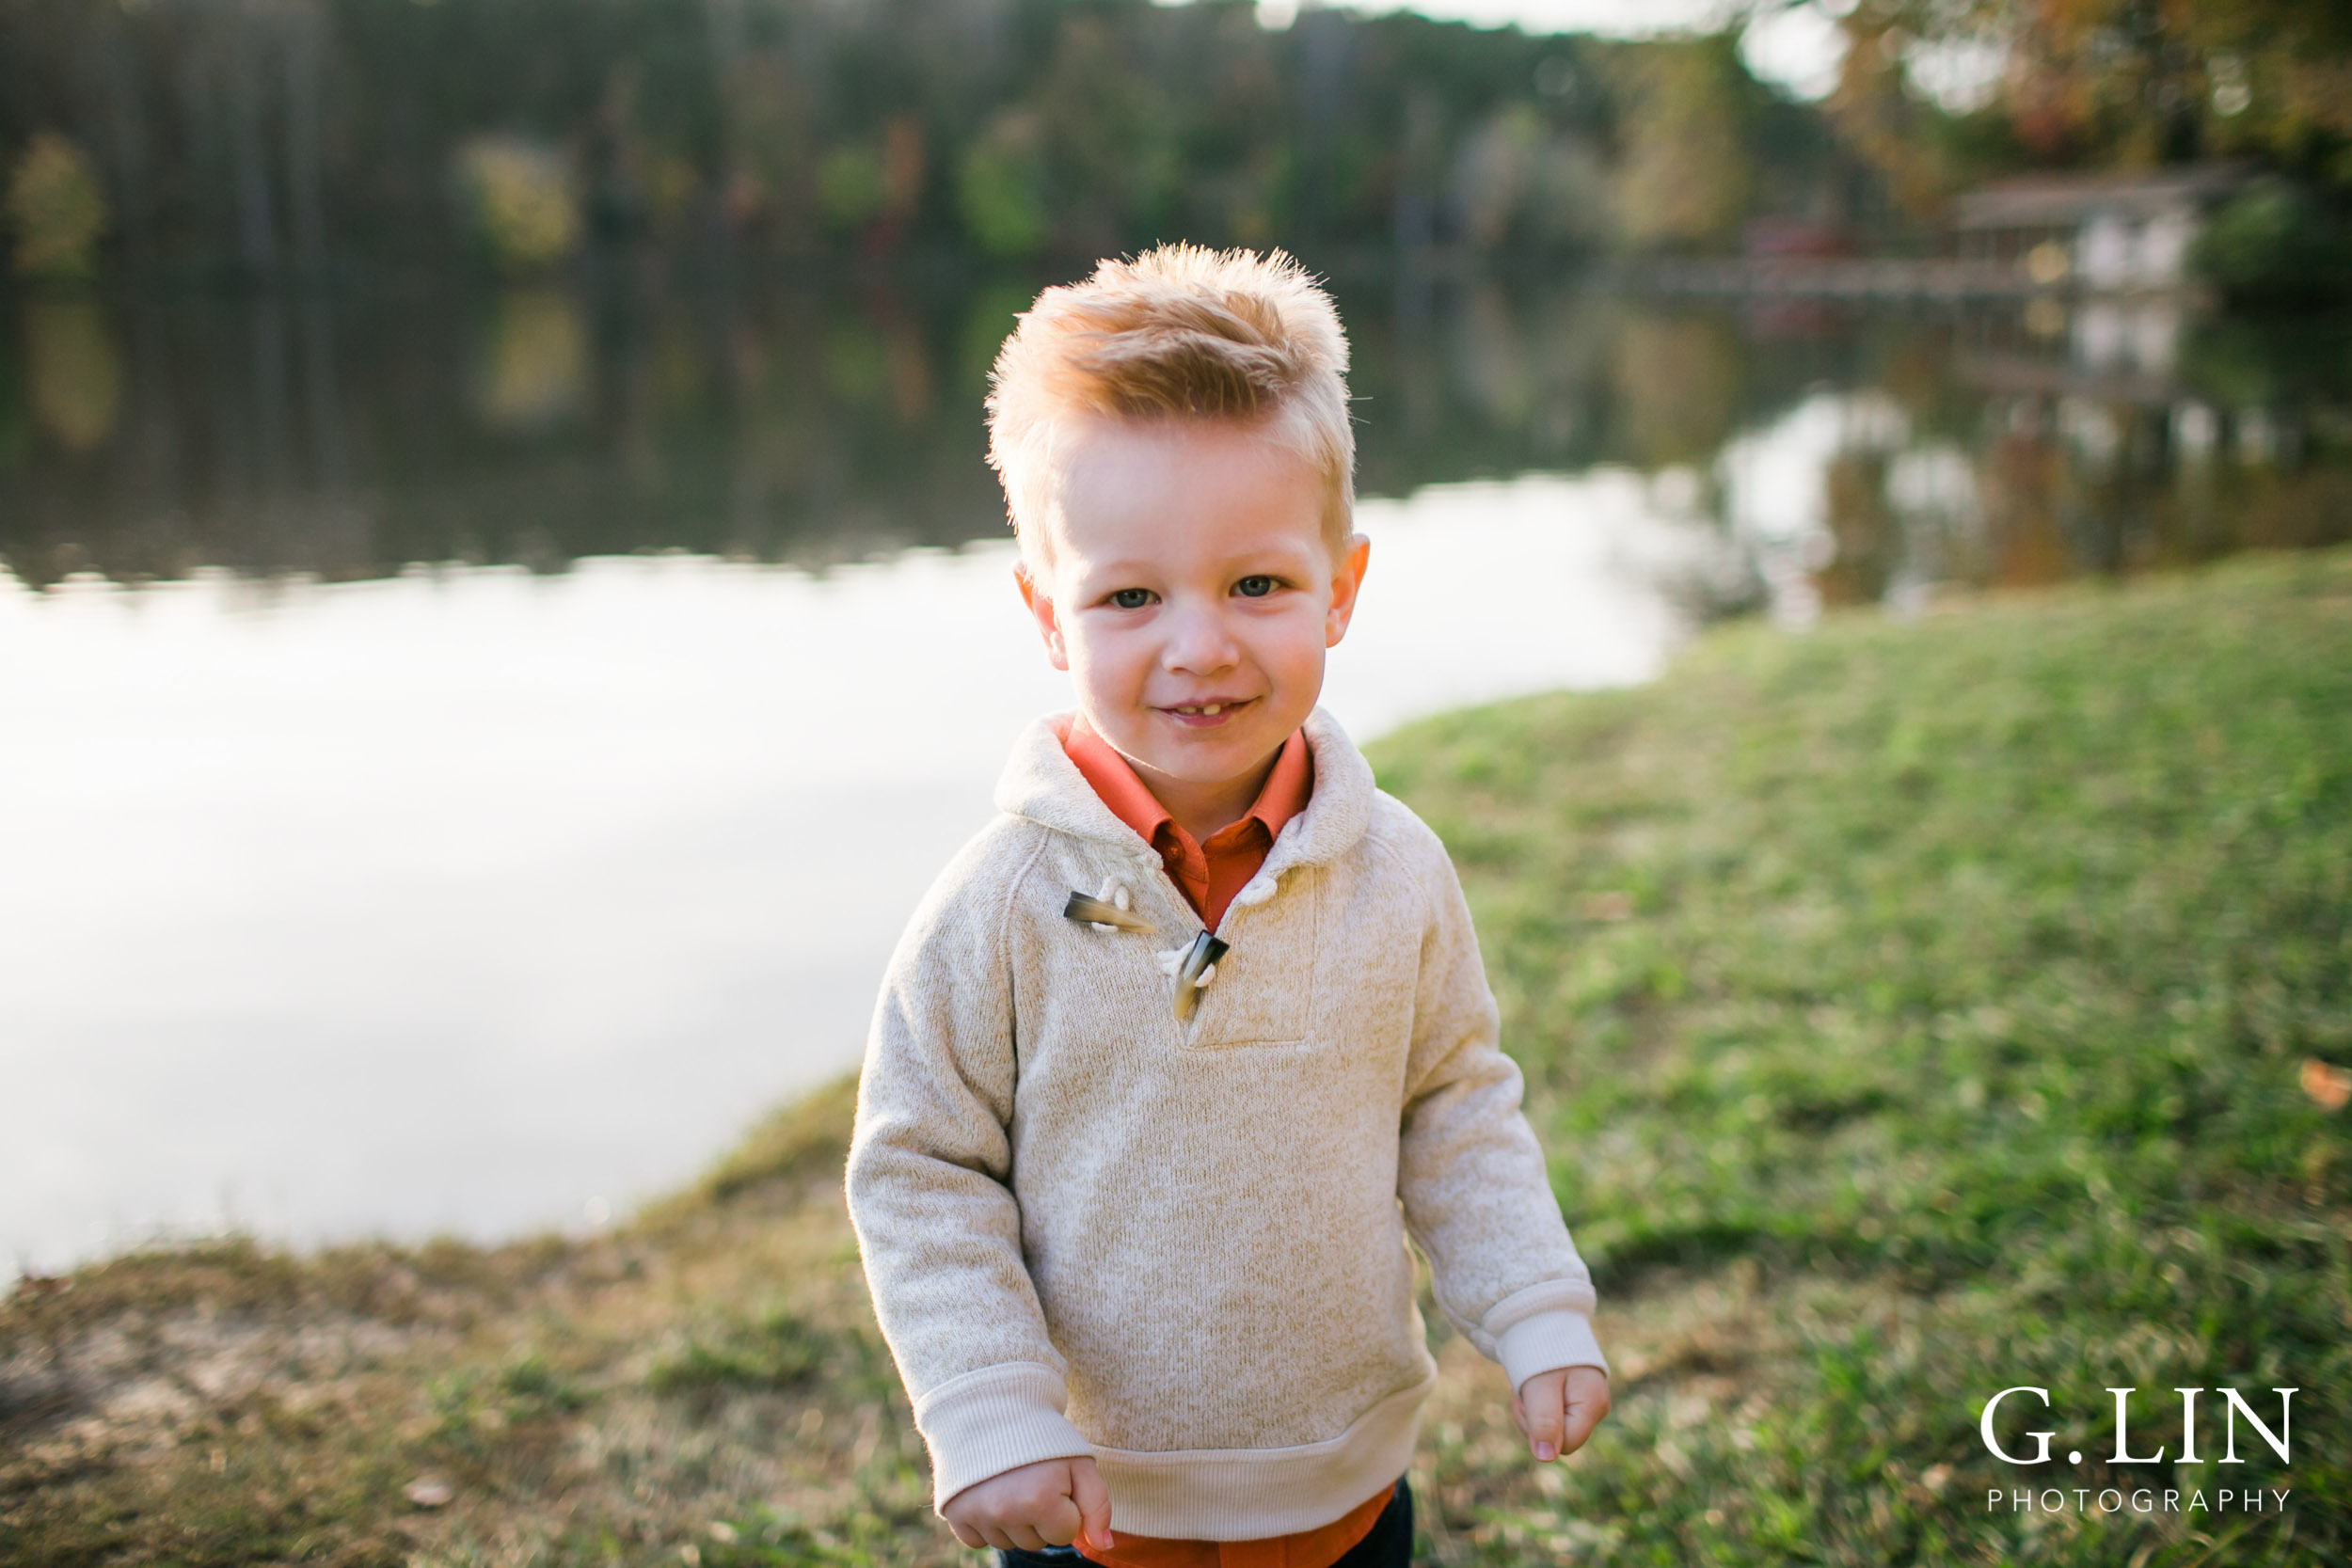 Raleigh Family Photographer | G. Lin Photography | sweet smile of little boy